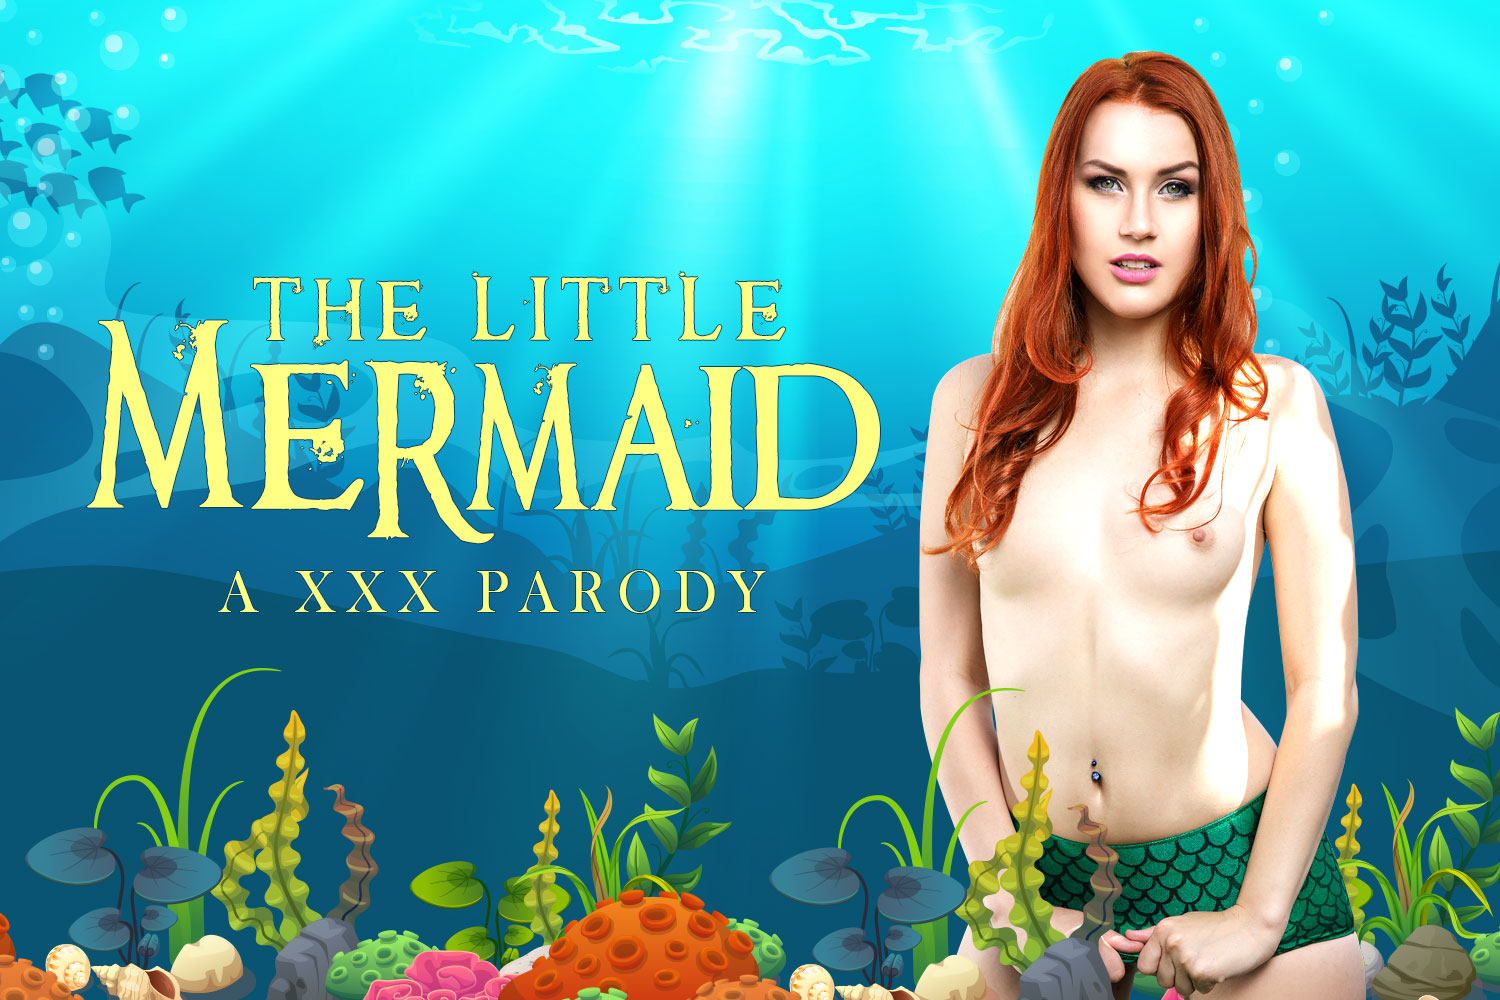 The Little Mermaid A XXX Parody Charlie Red